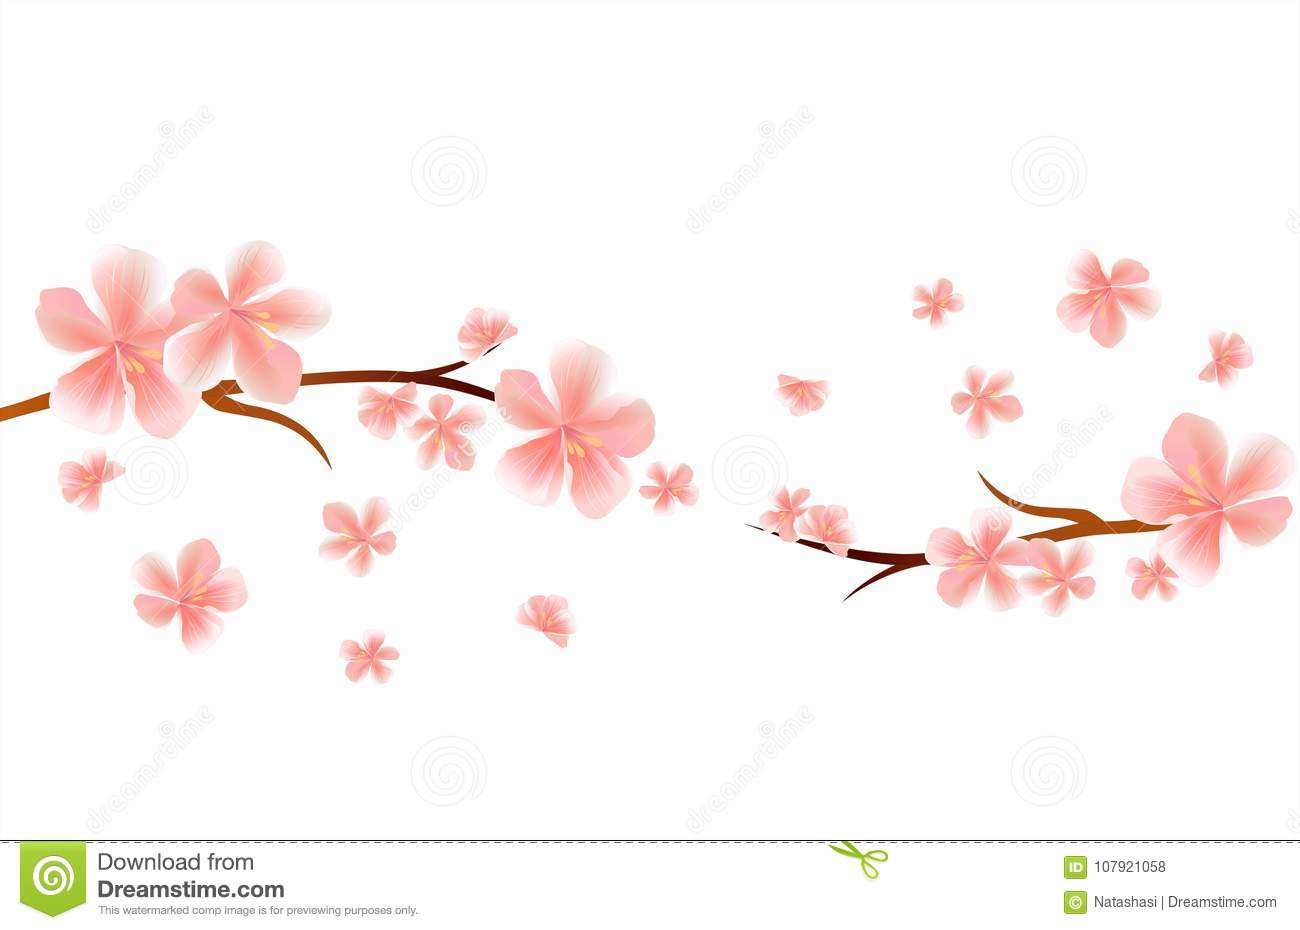 Blossom Branches Of Sakura With Pink Flying Flowers Isolated On